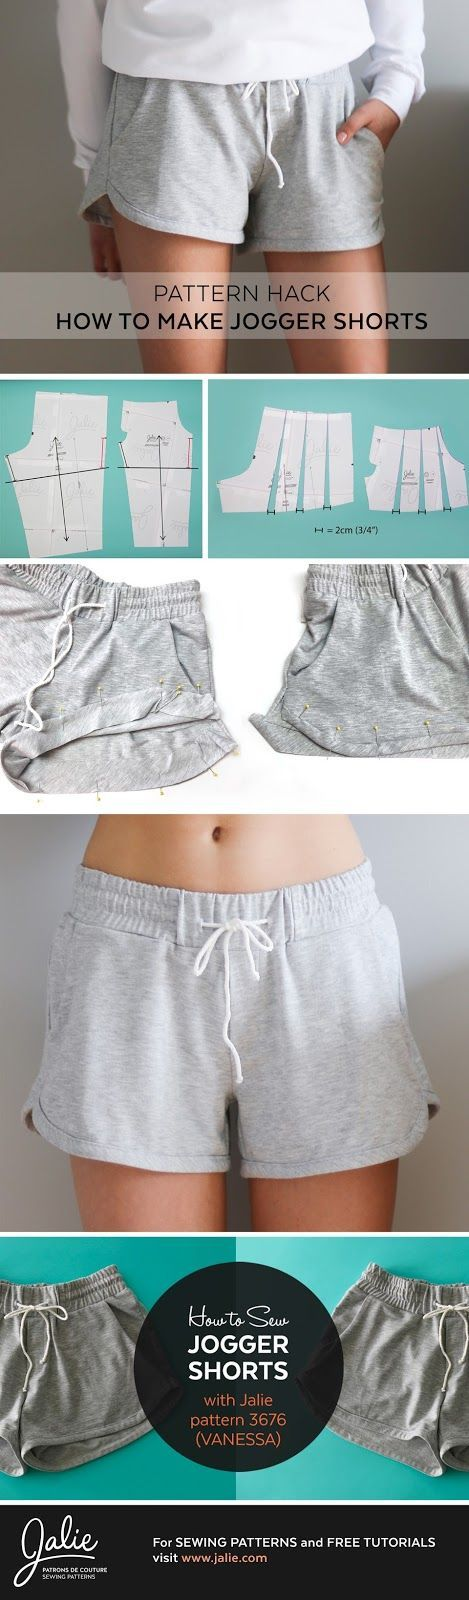 Jalie Sewing Patterns - News, Info and Ideas: Vanessa Jogger Shorts ...